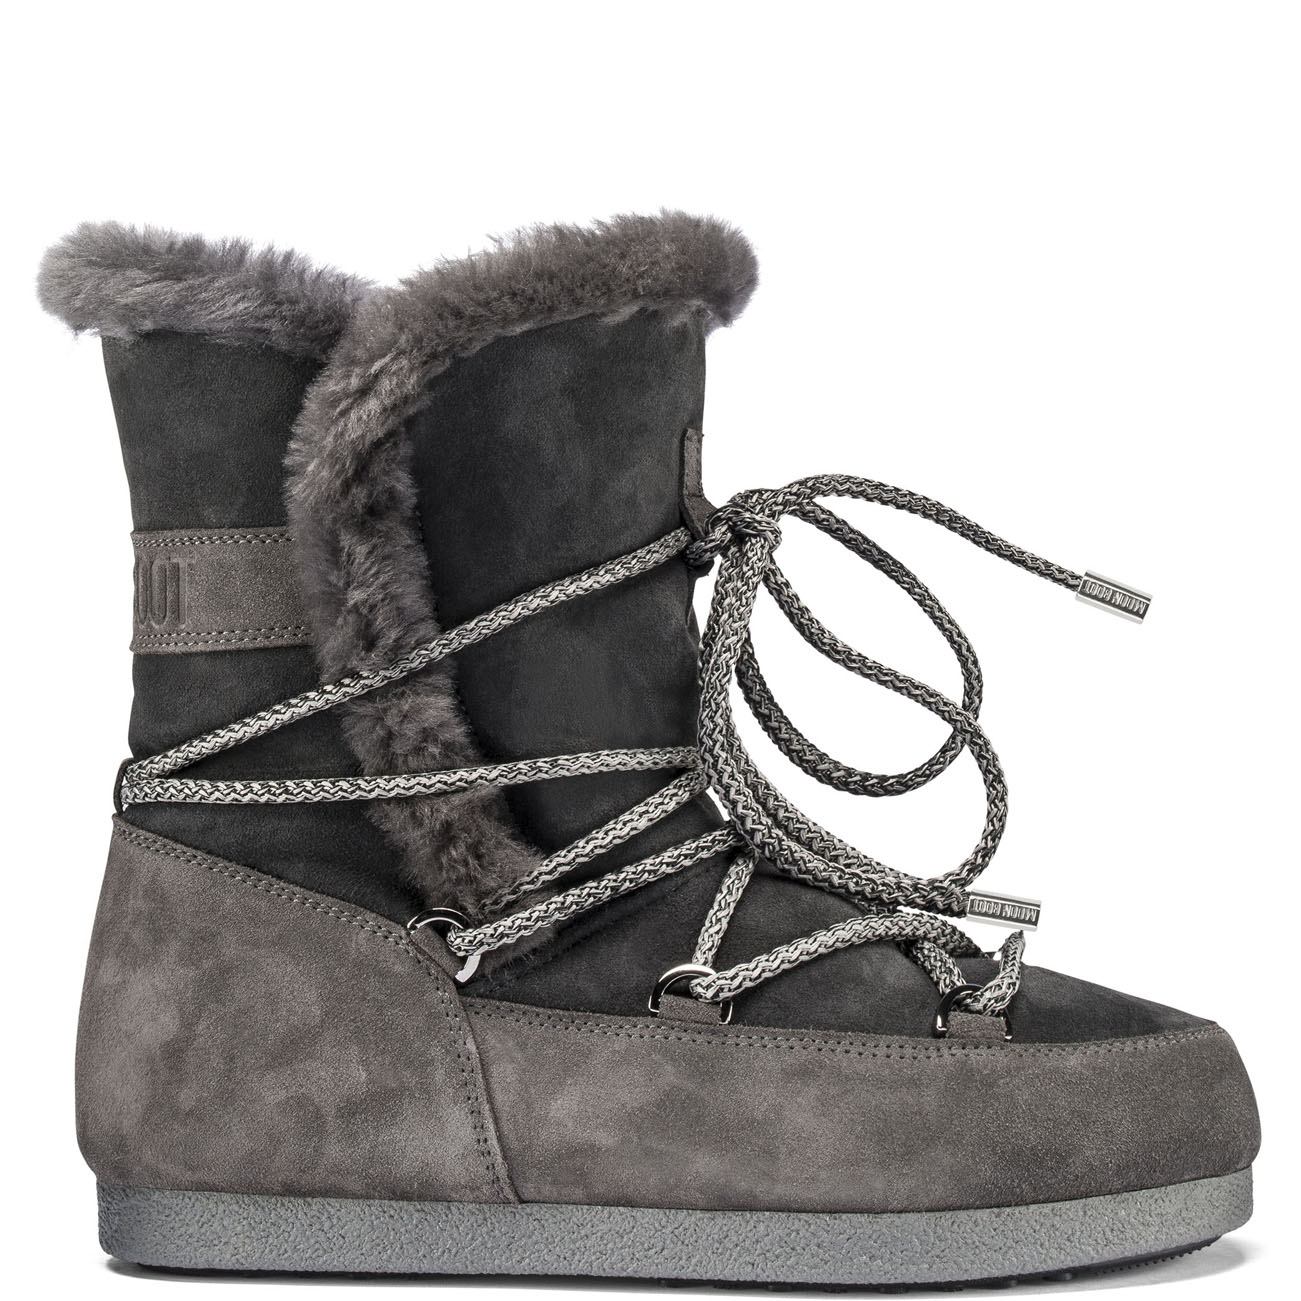 Tecnica Moon Boot Far Side high Shearling